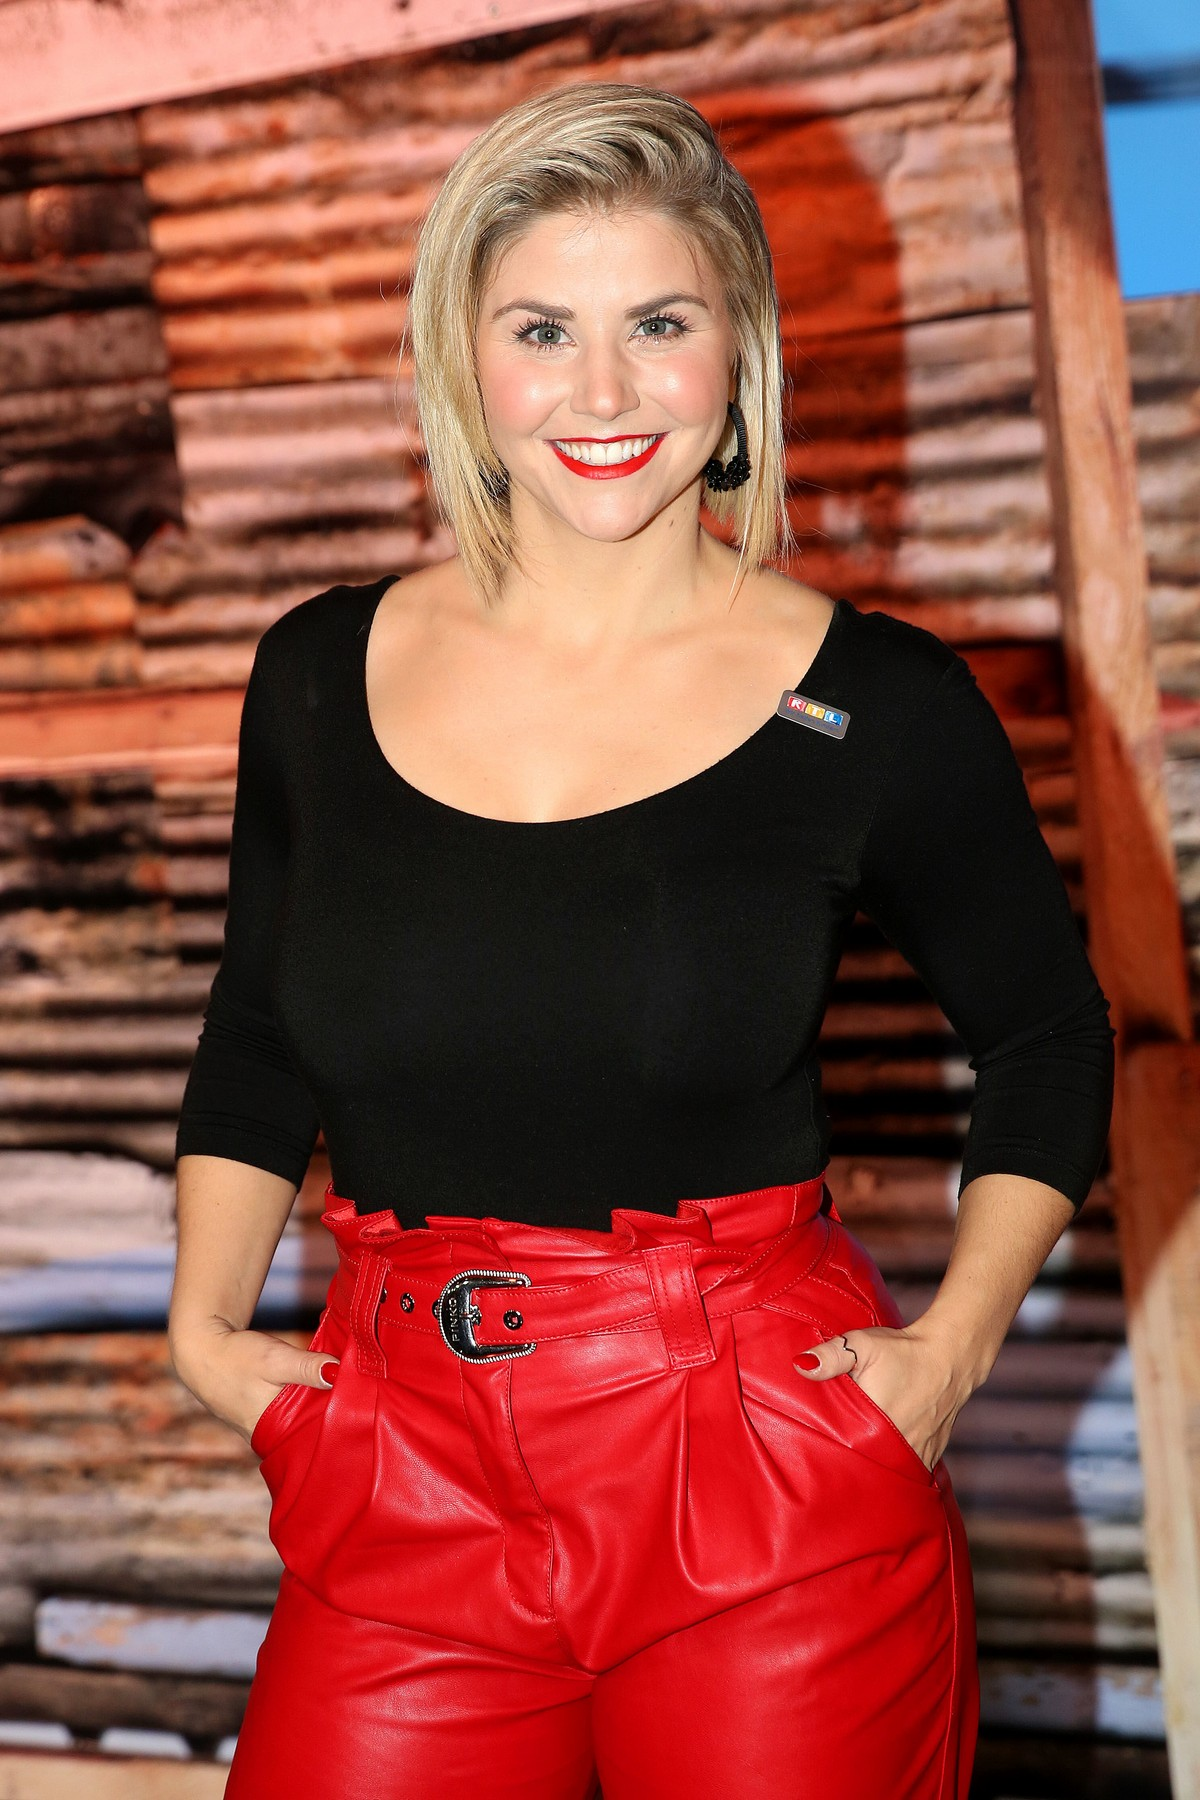 Beatrice Egli in Black and Red Outfit attends RTL ...